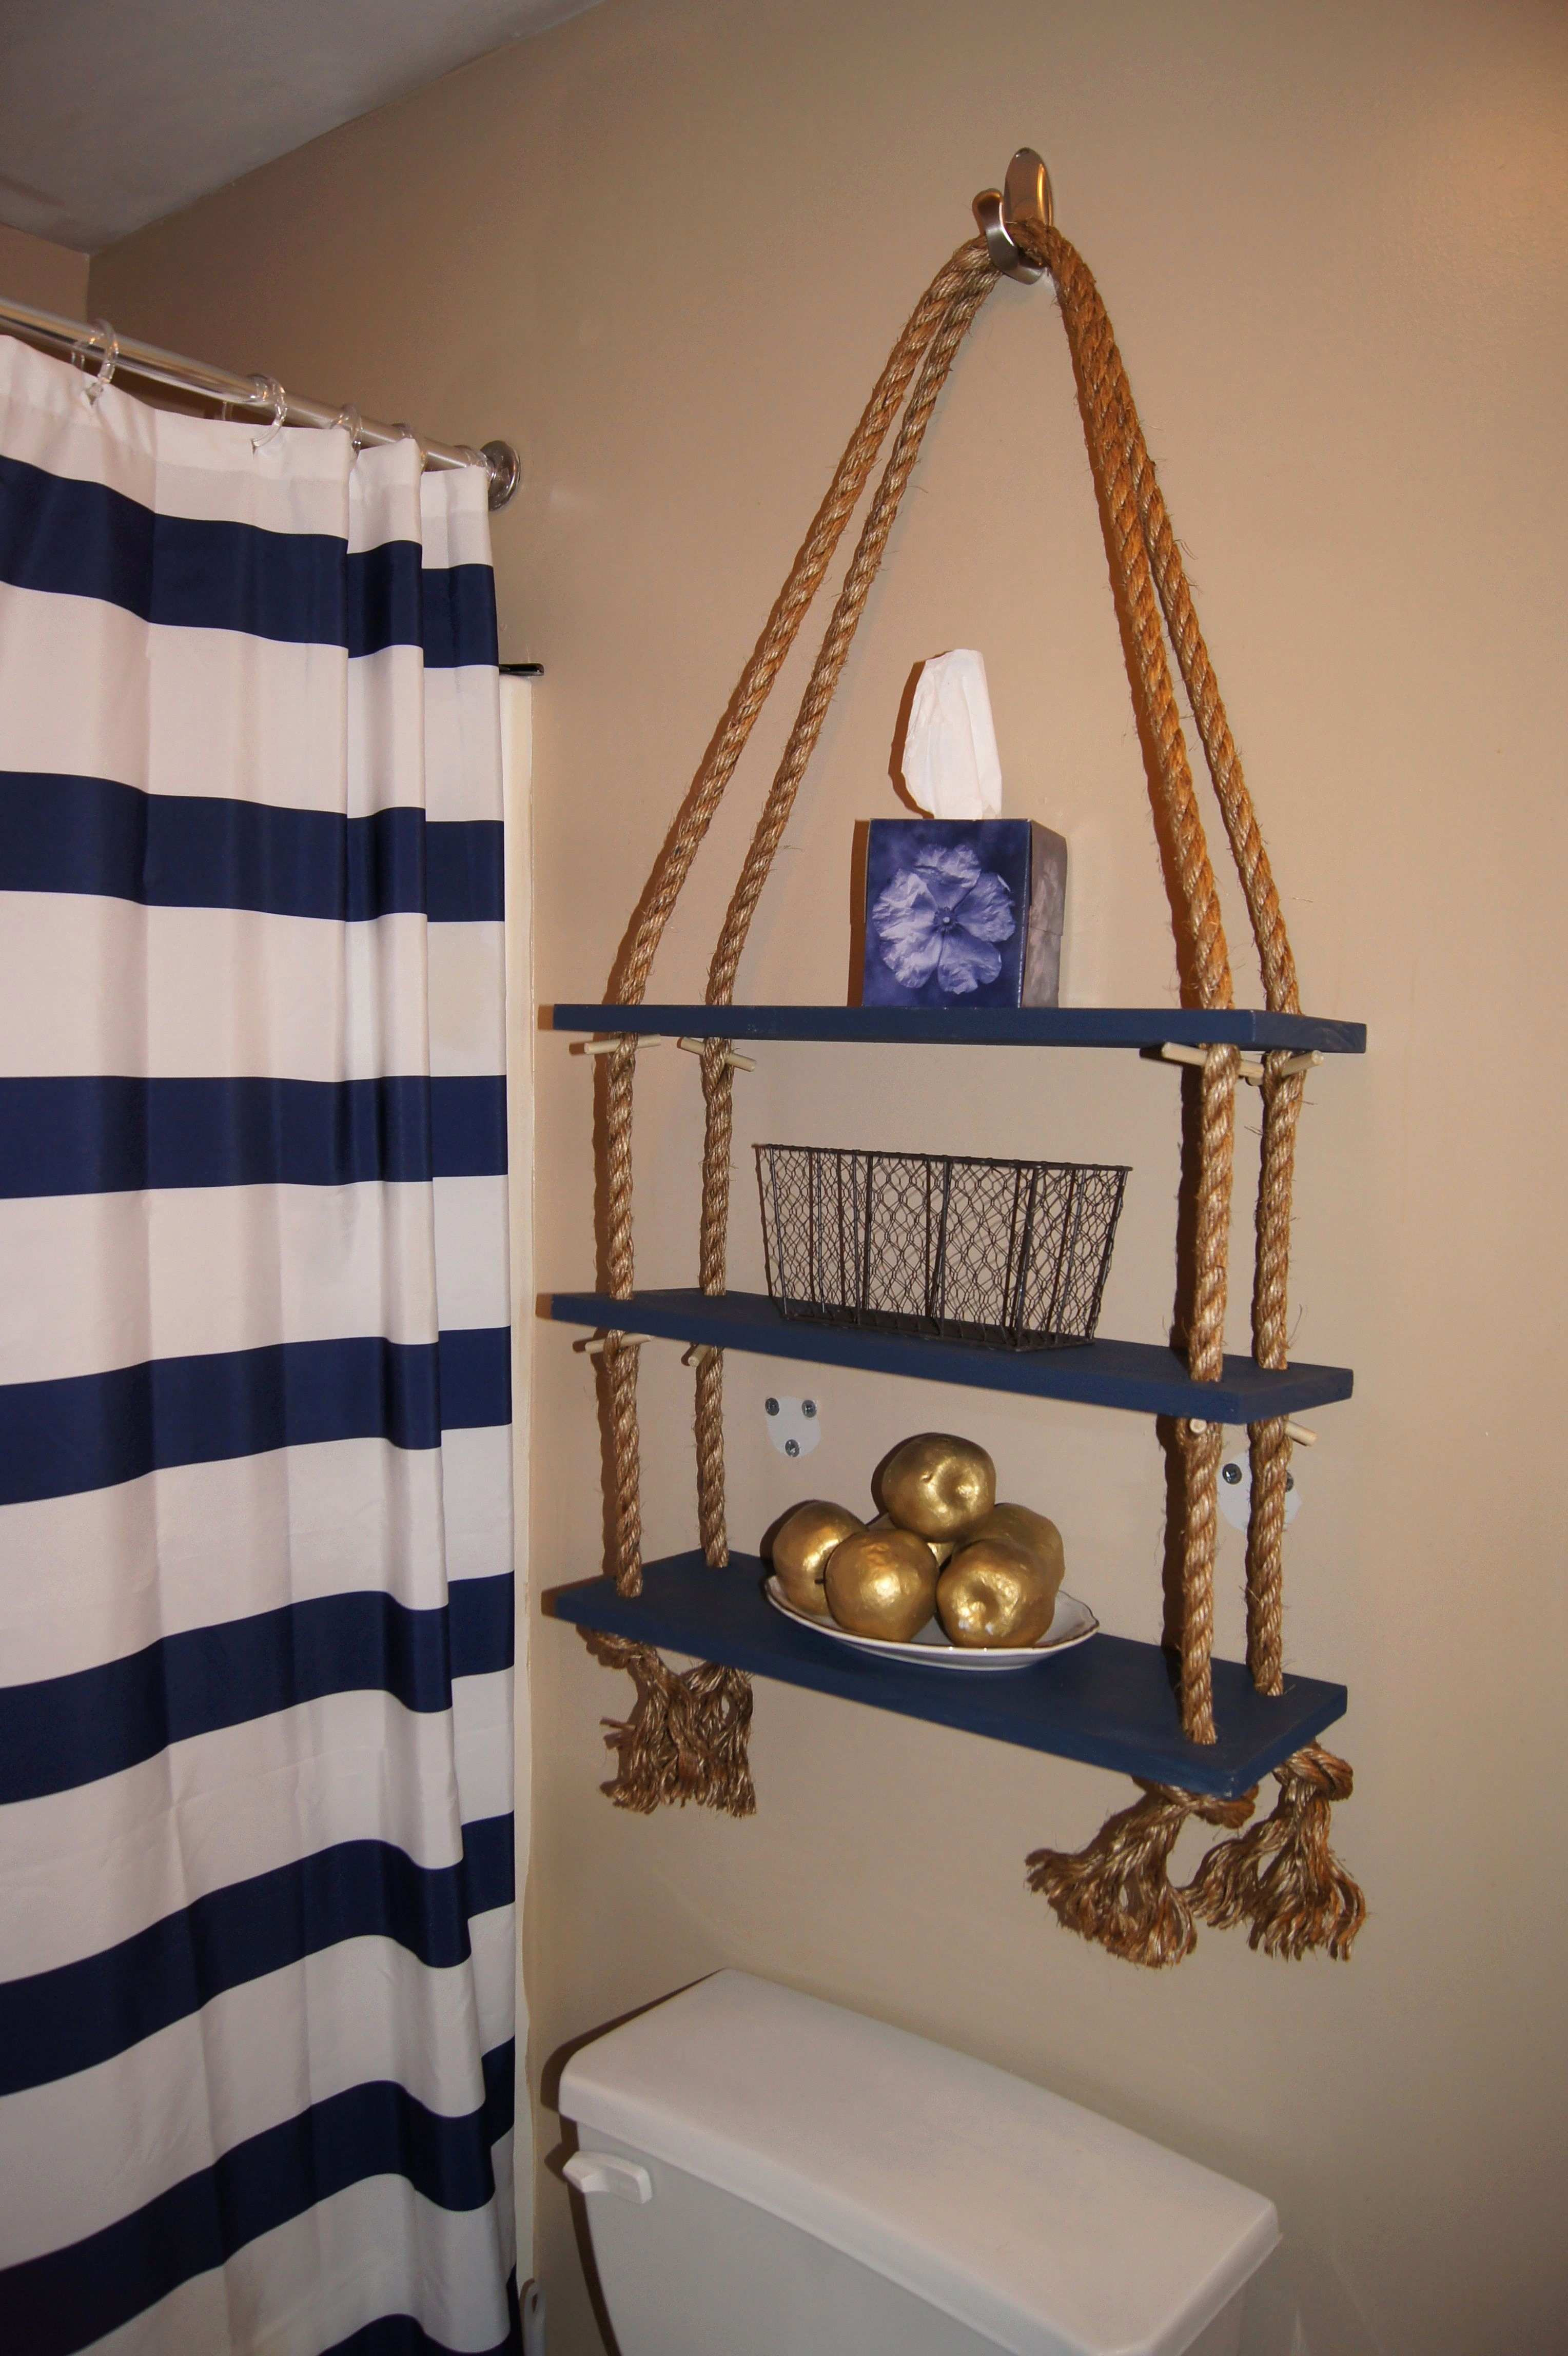 Nautical Bathrooms Decorating Ideas Inspirational Home Bedrooms Bedroom Ideas Rustic Chic Simple Cozy Neutral